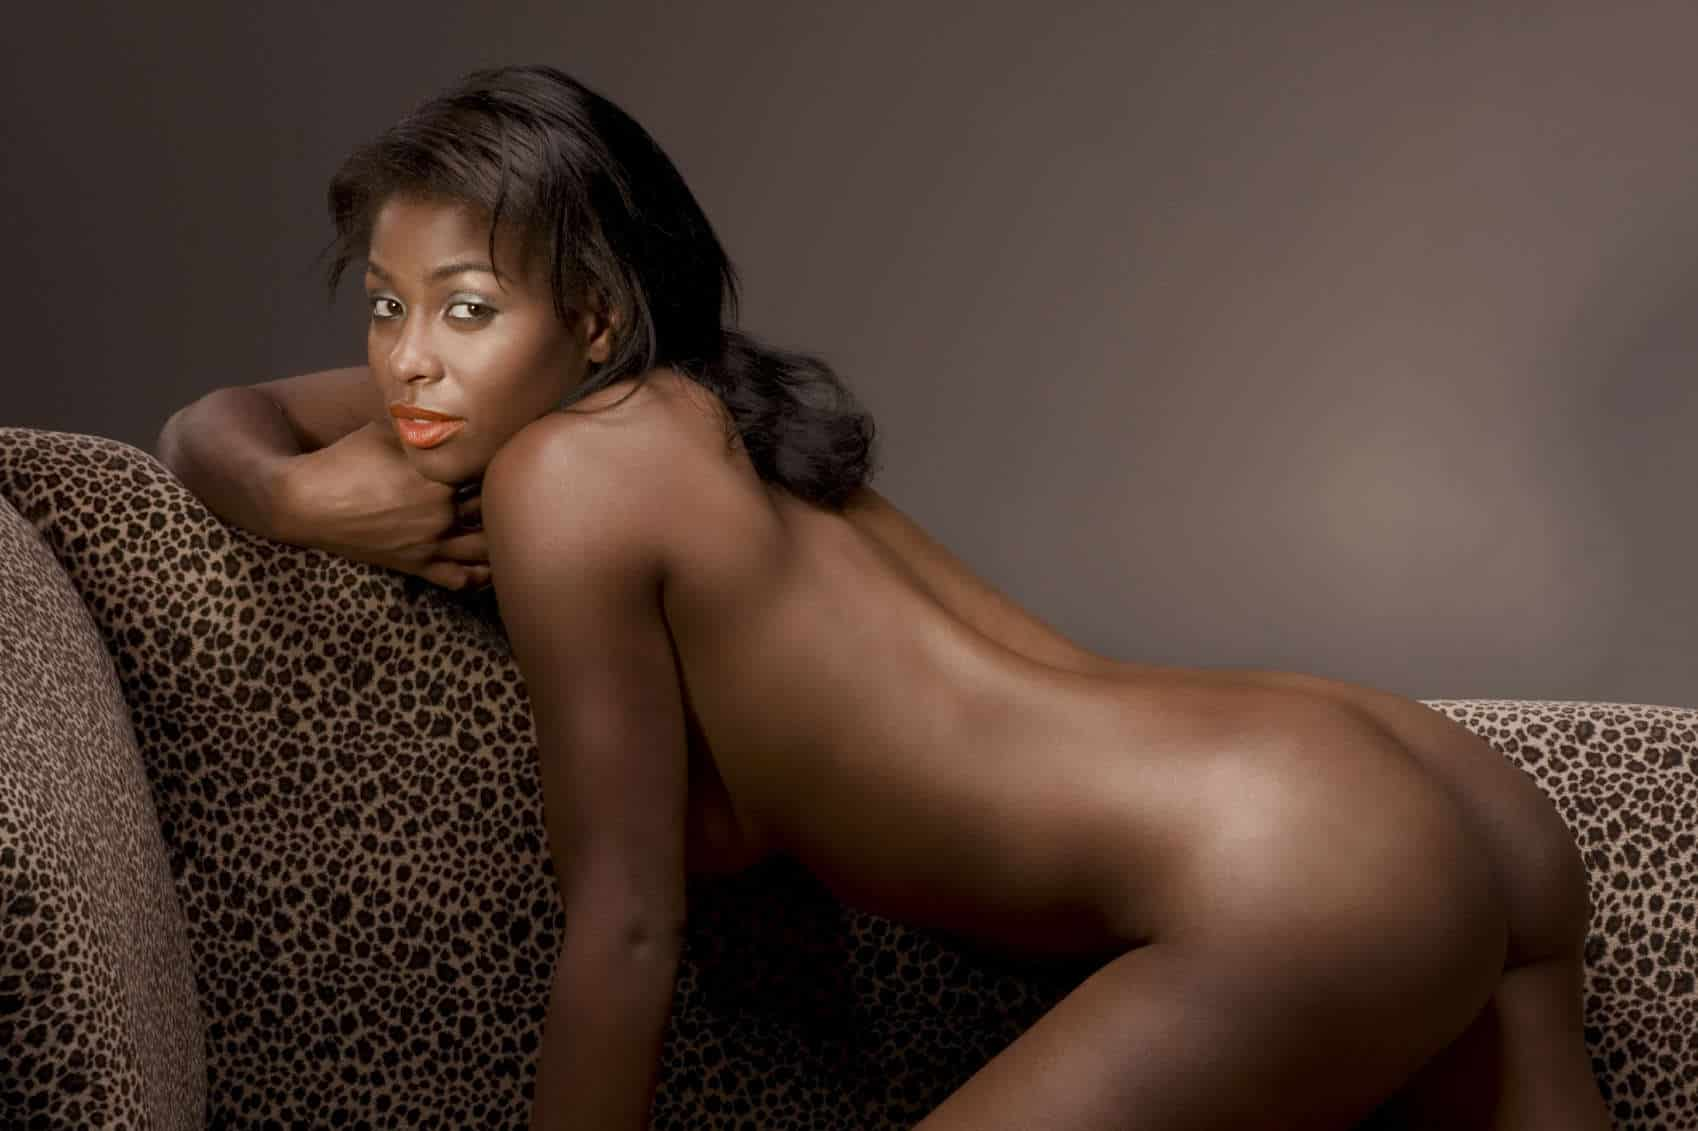 Ethnic naked seductive woman in sensual hot pose